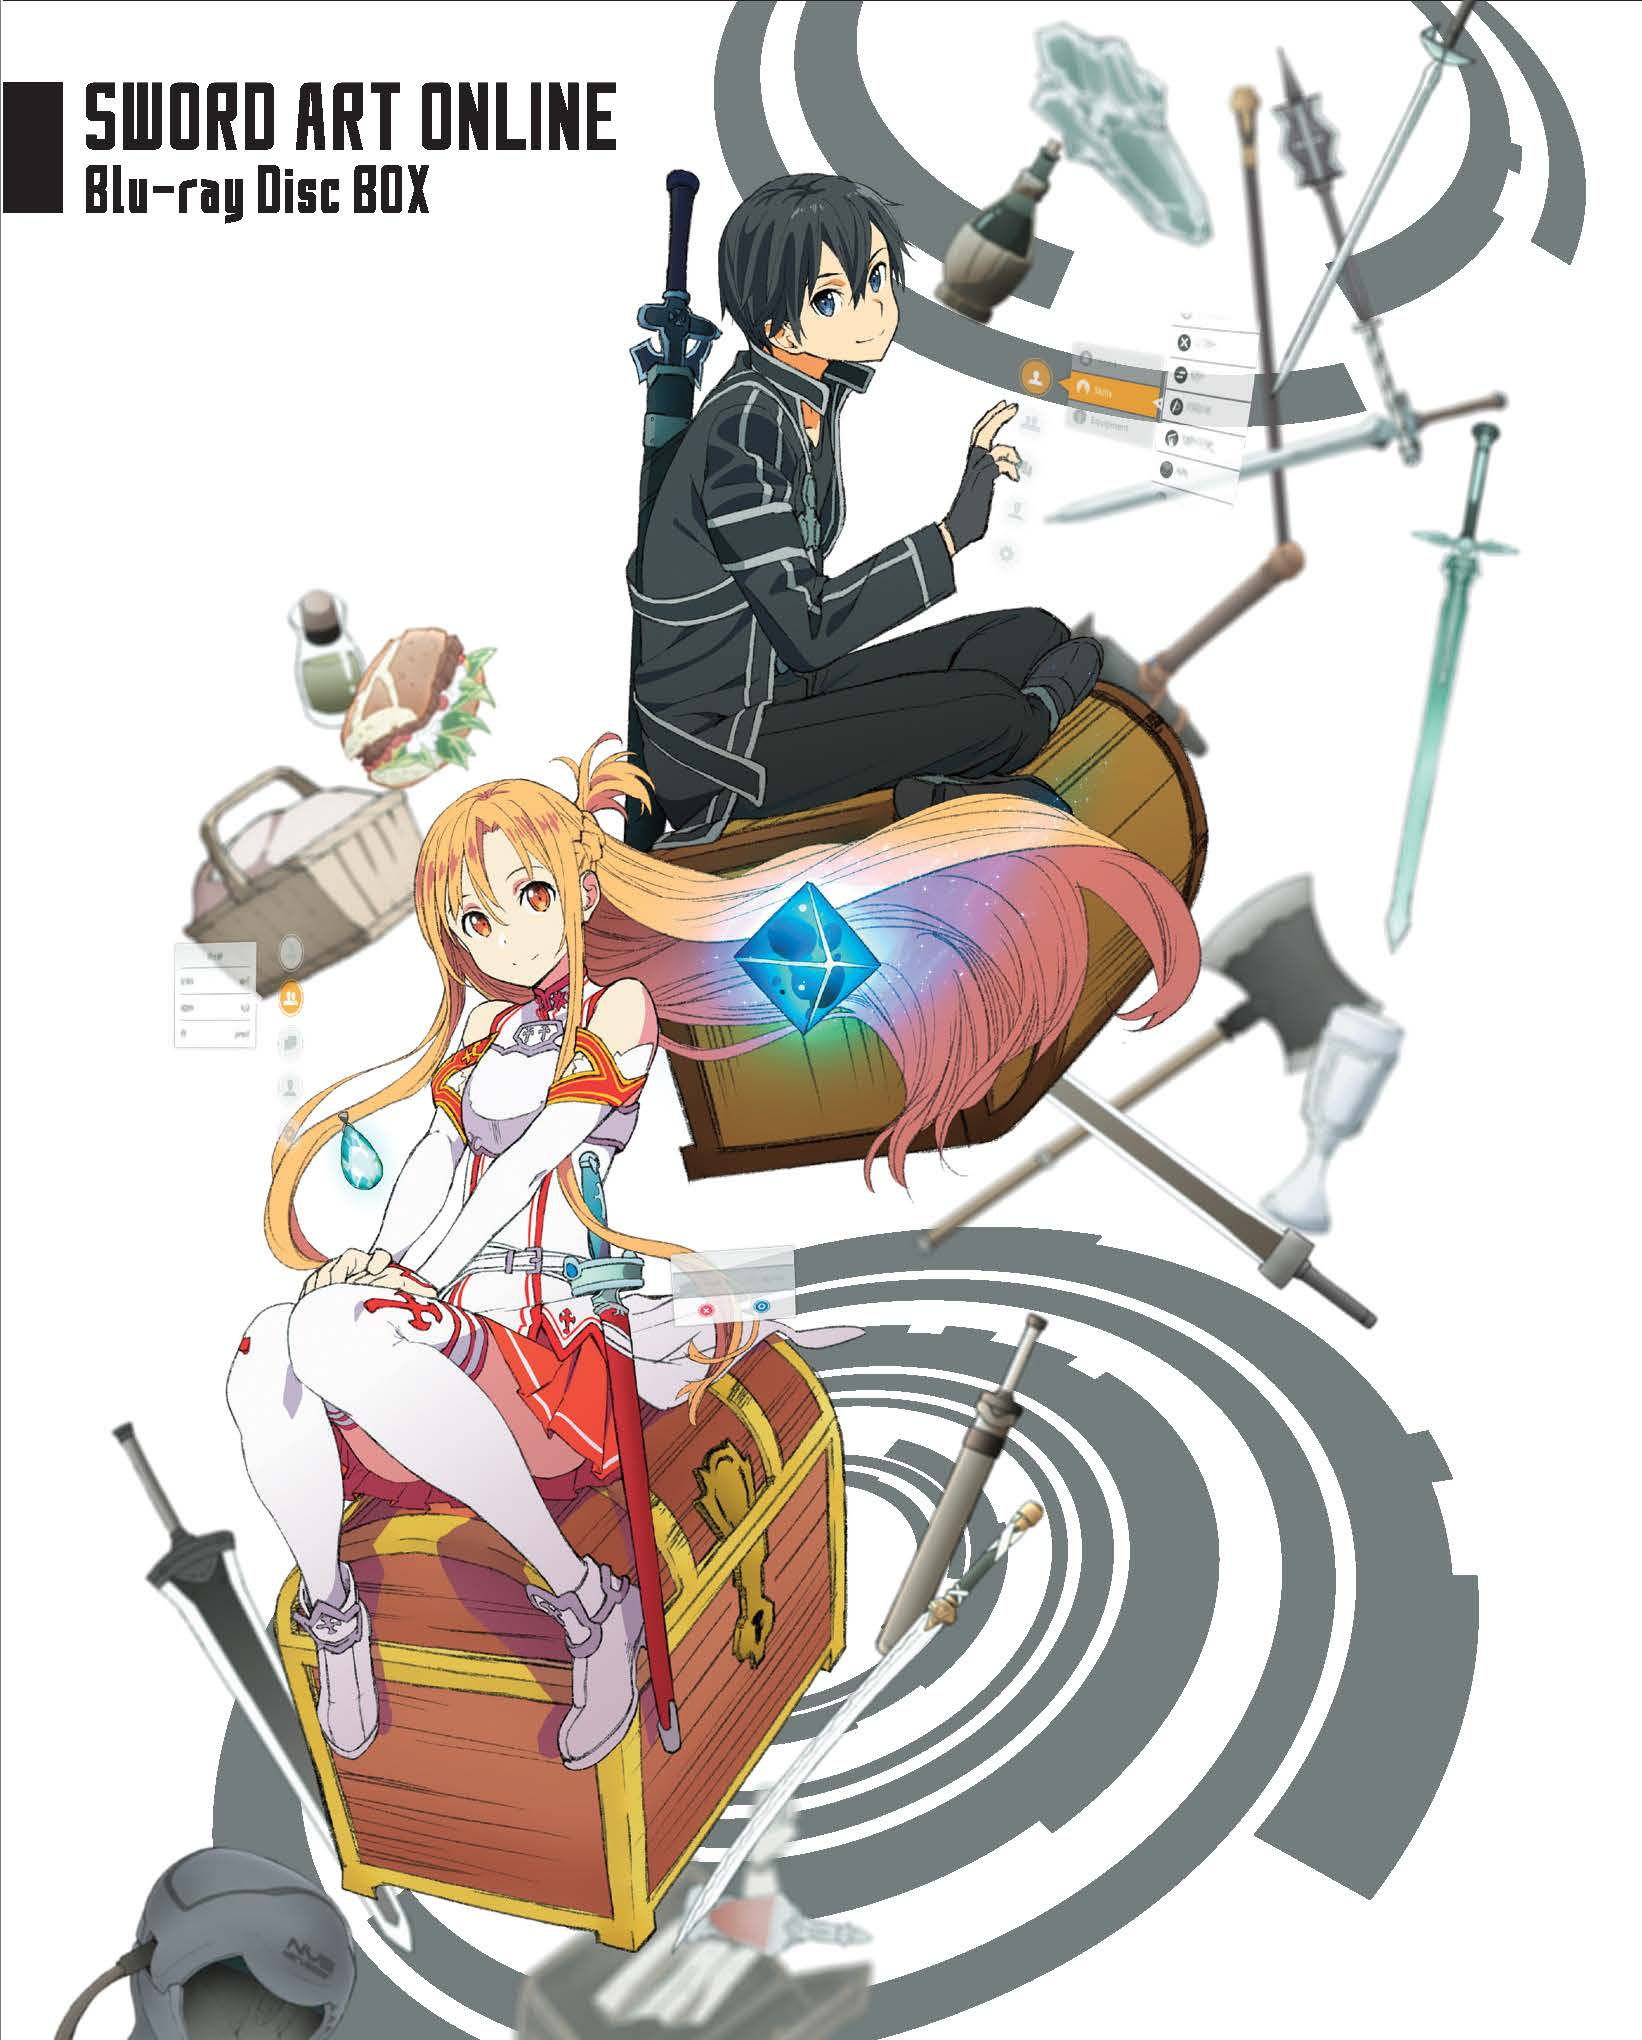 Sword Art Online Box Set Blu-ray